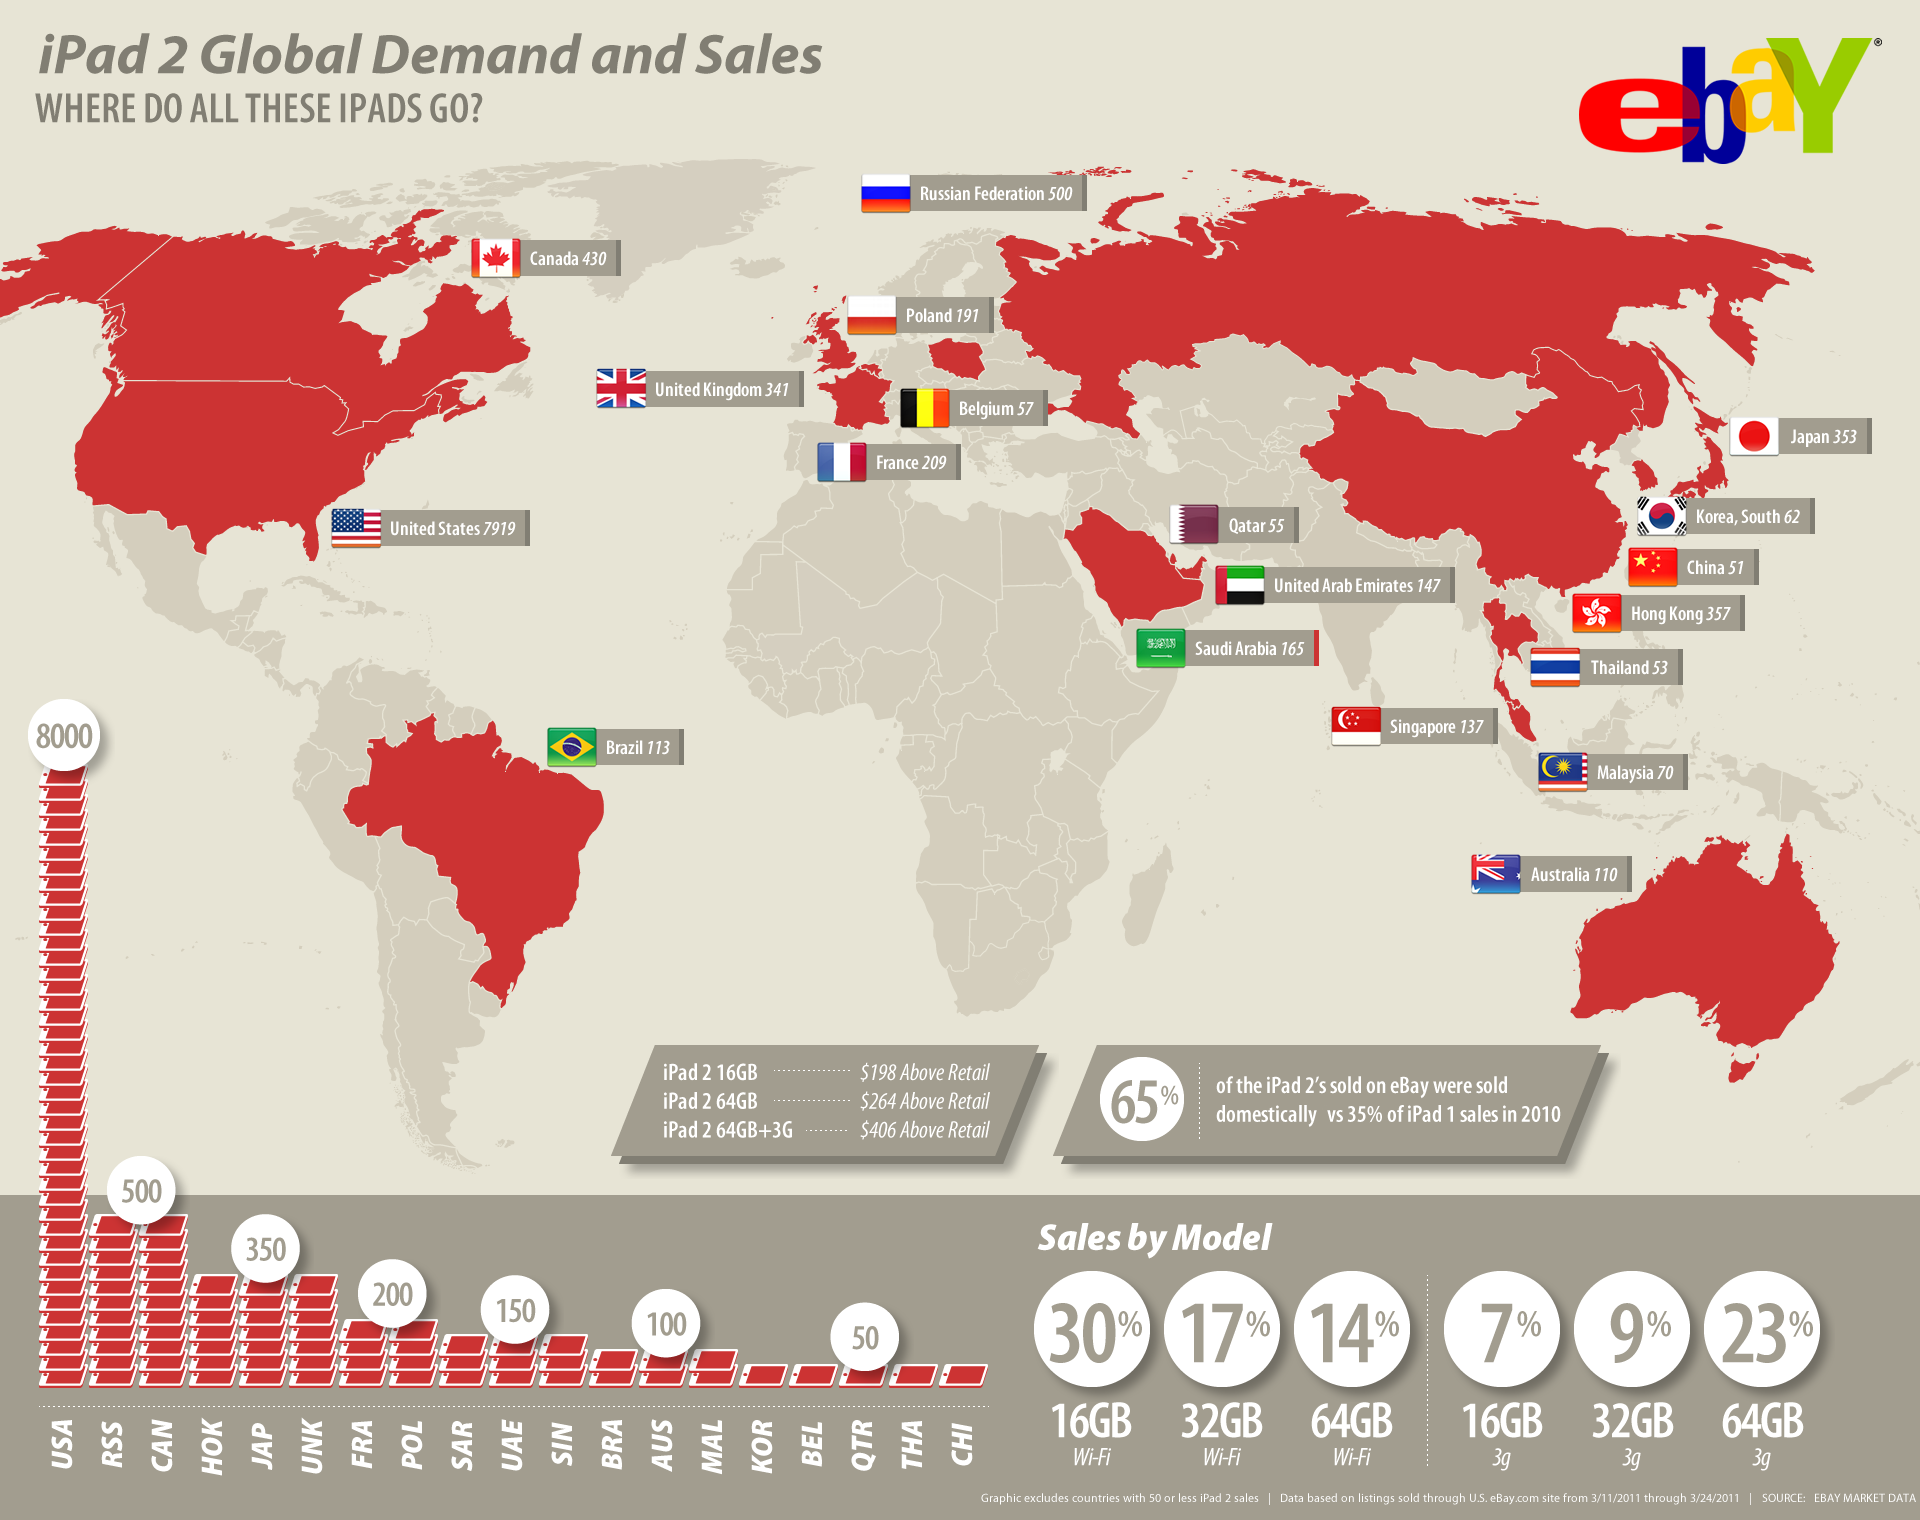 How Many iPad 2s Did eBay Sell? To Who? This Infographic Has The Answers